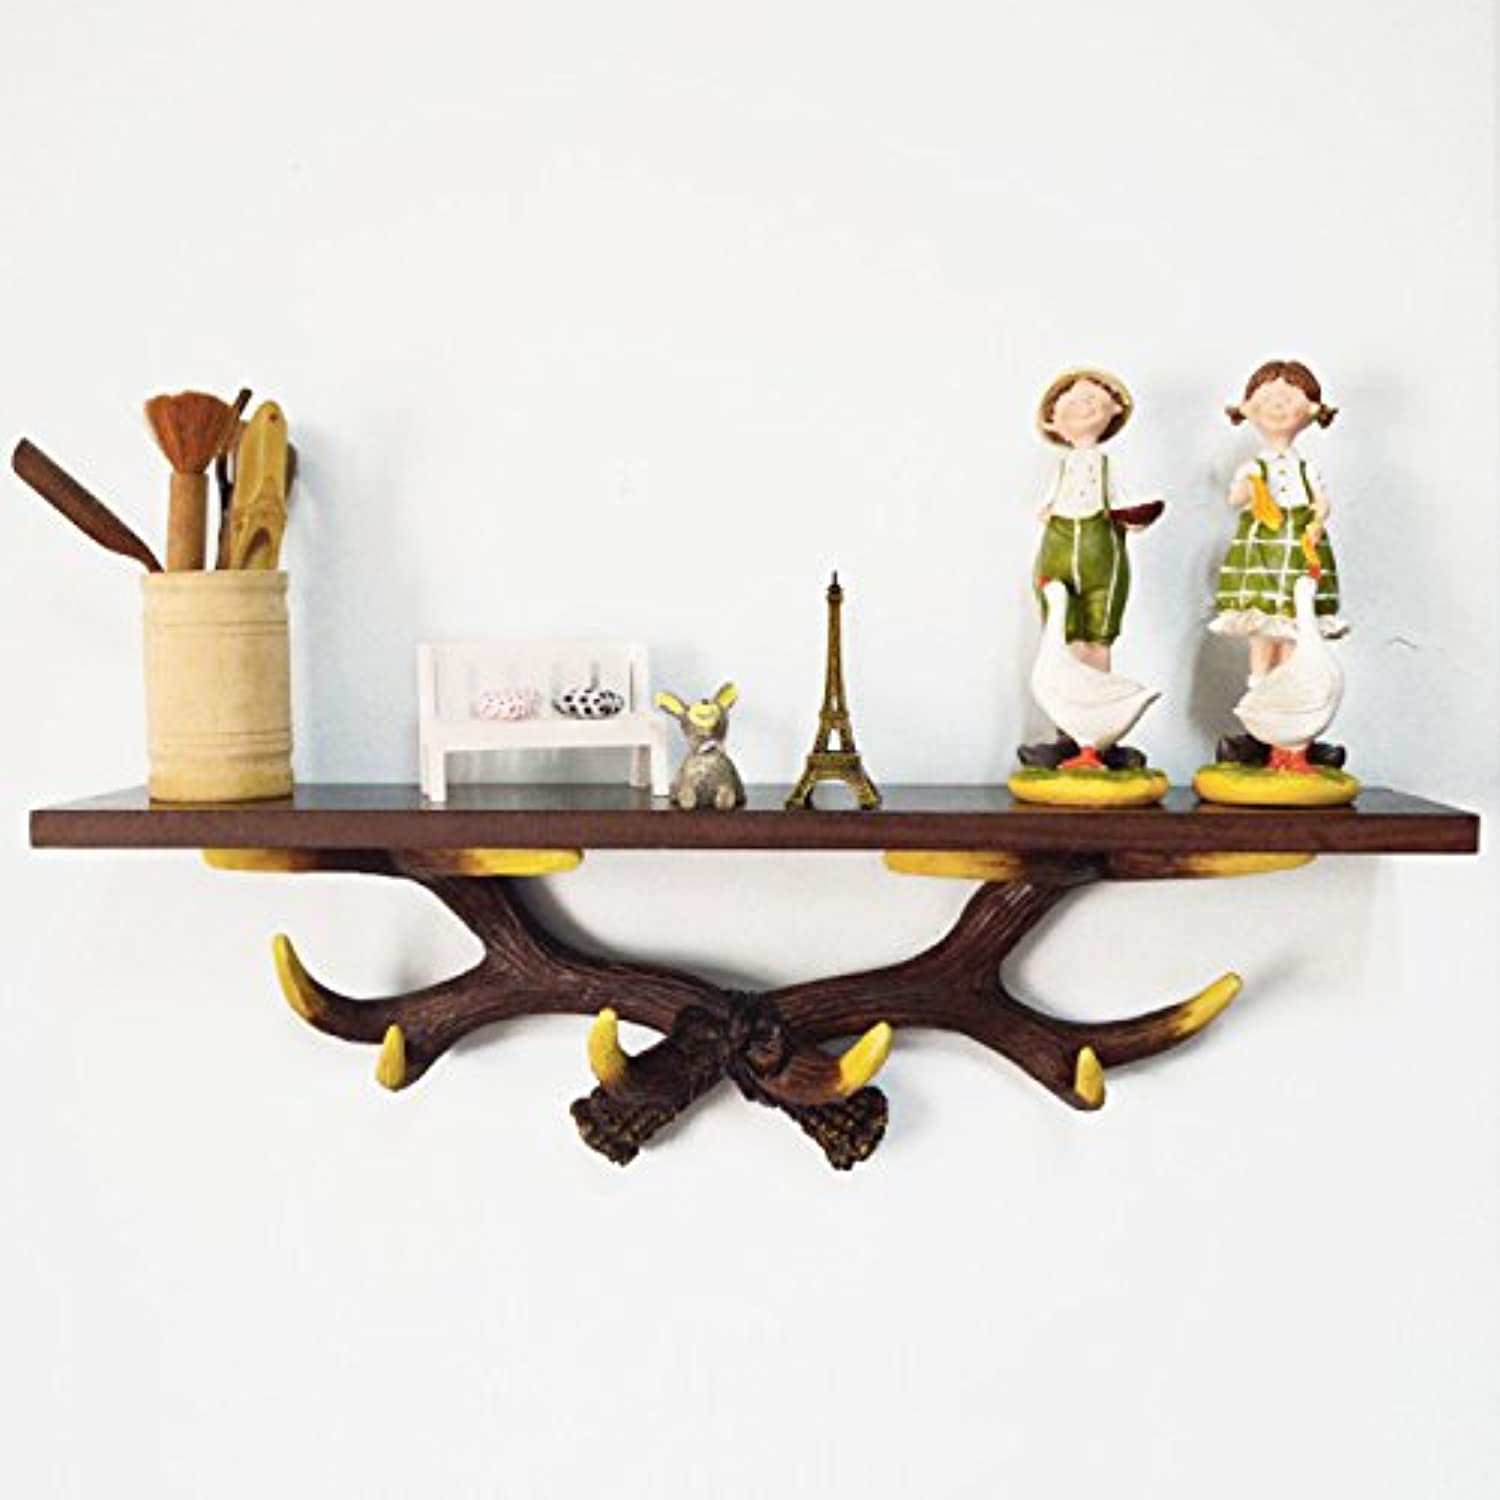 LIAN Rack European-Style Antler Wall Mounted Resin Shelf for Kitchen Bathroom Bathroom Storage Shelf Wall Decoration, 23.6  4.7  6.7 inch (color   Brown)